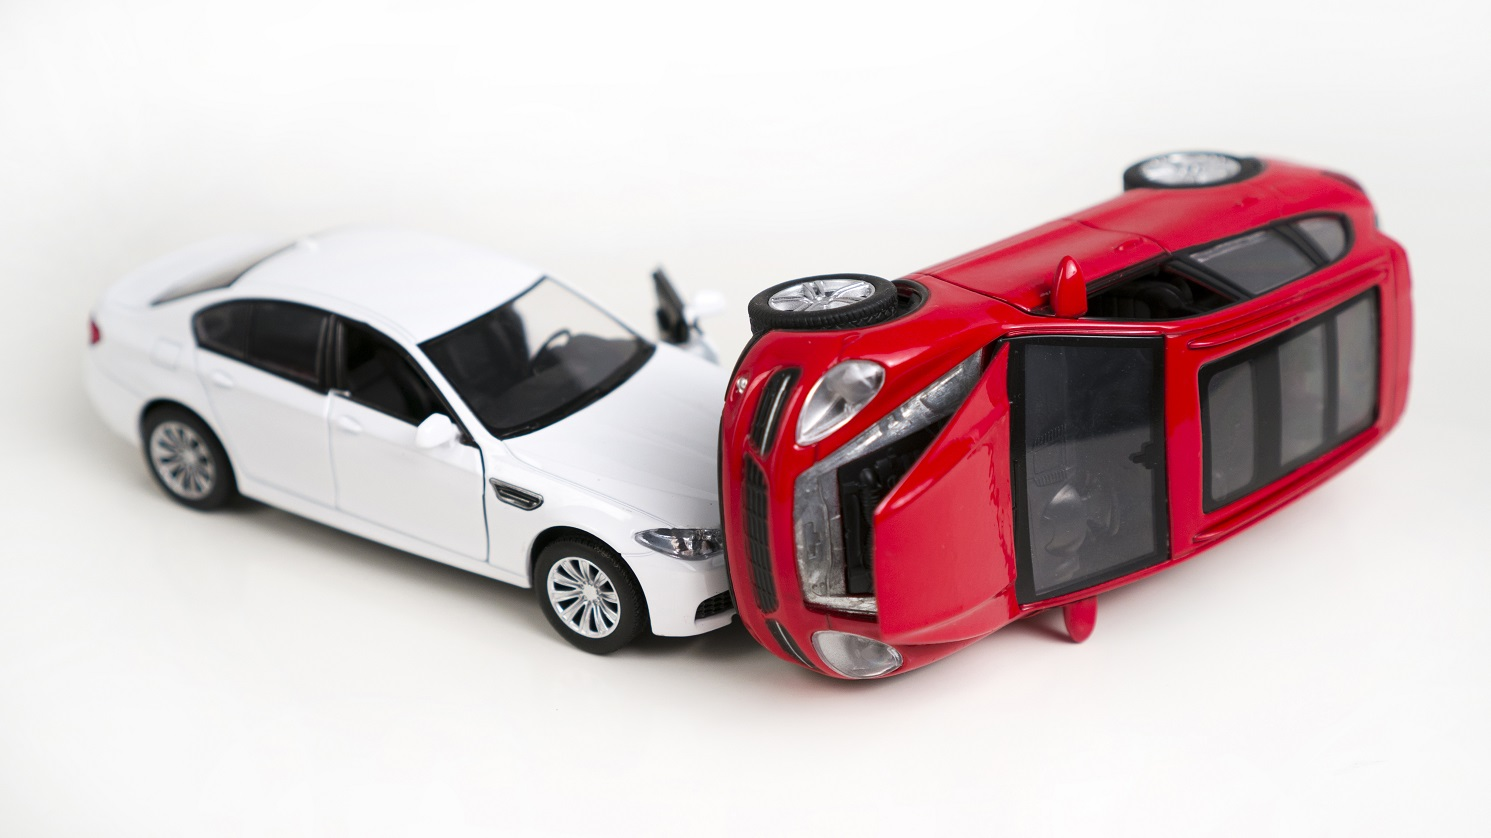 Image result for Car Accident toys